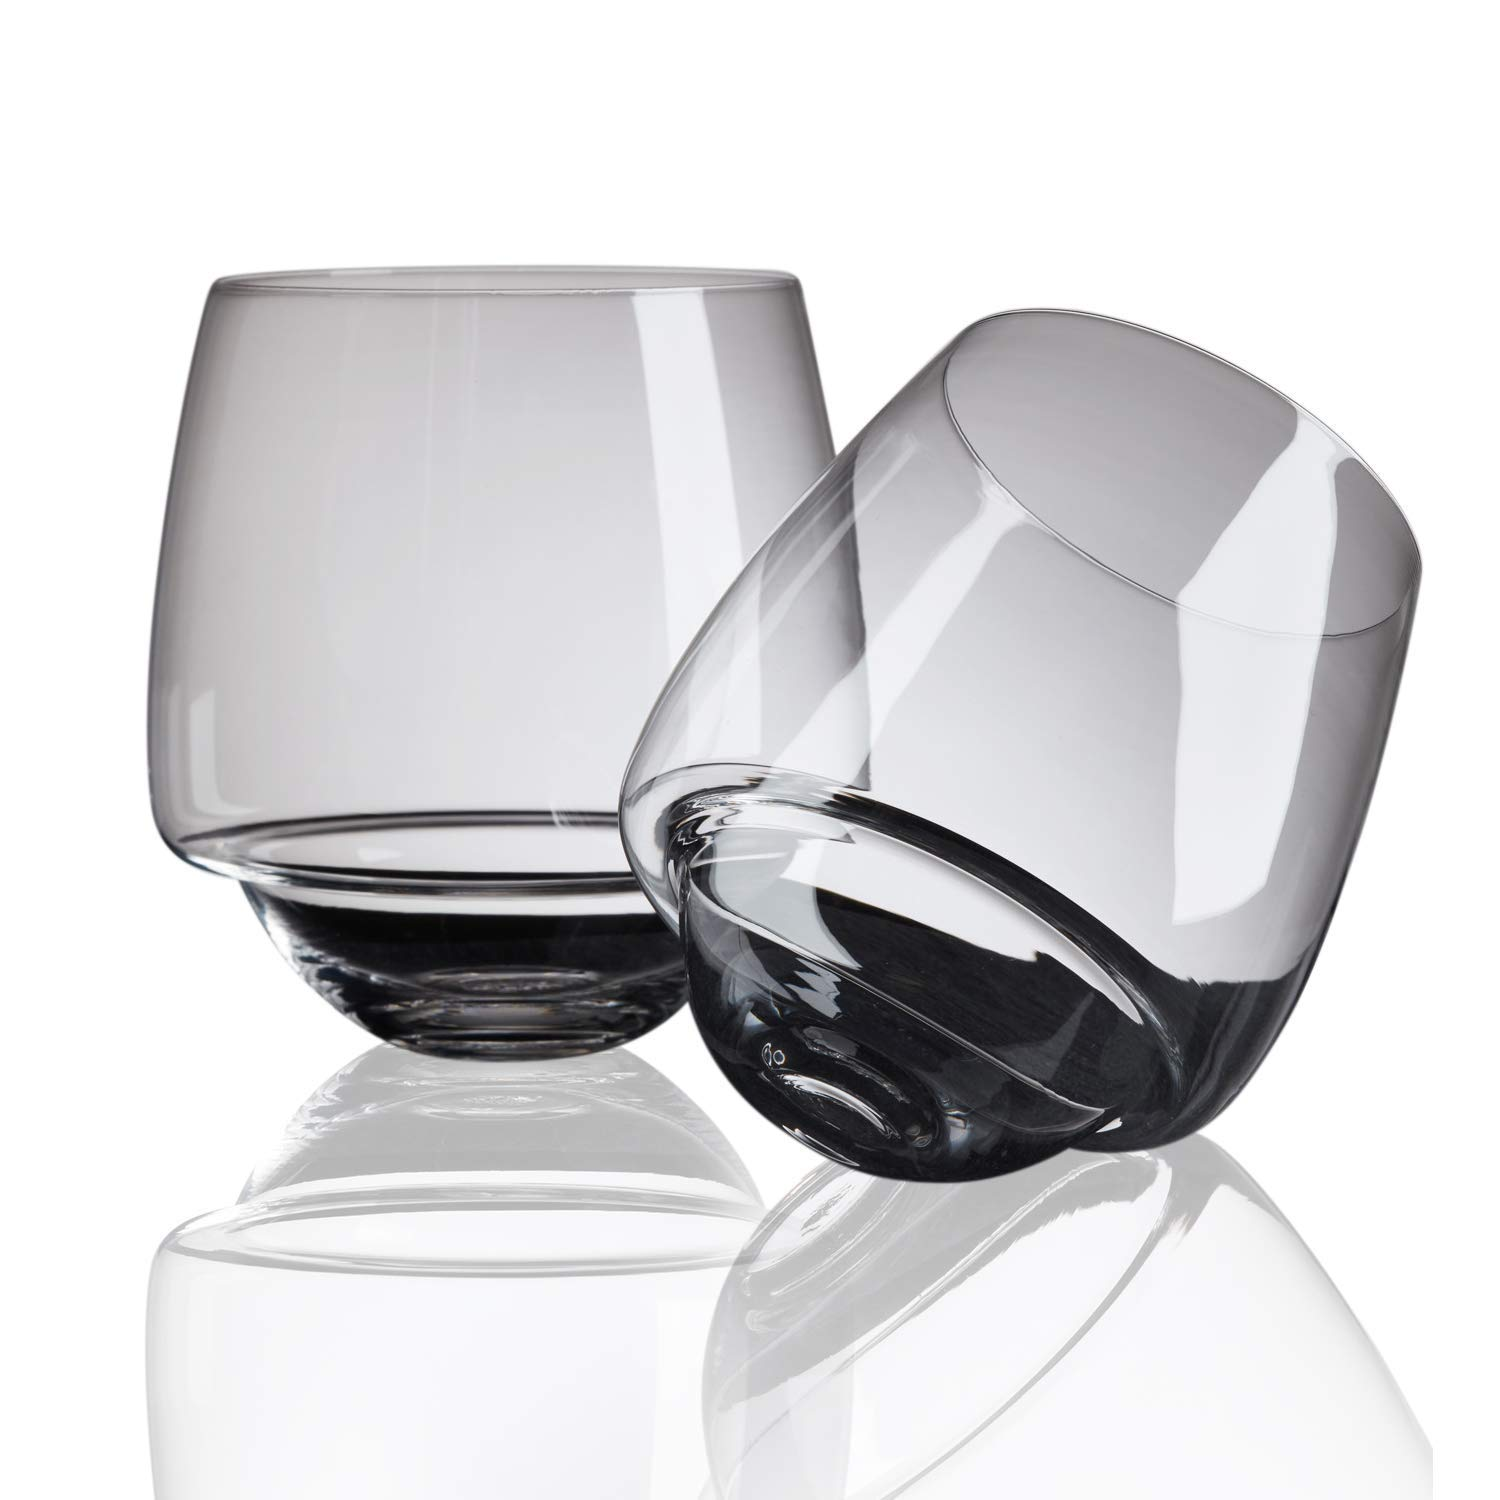 Variation 650327838246 Of Saturn Wine Glass Unique And Elegant Spill Resistant Red Wine Glass Great Gift Idea B0716JKBGB 31706